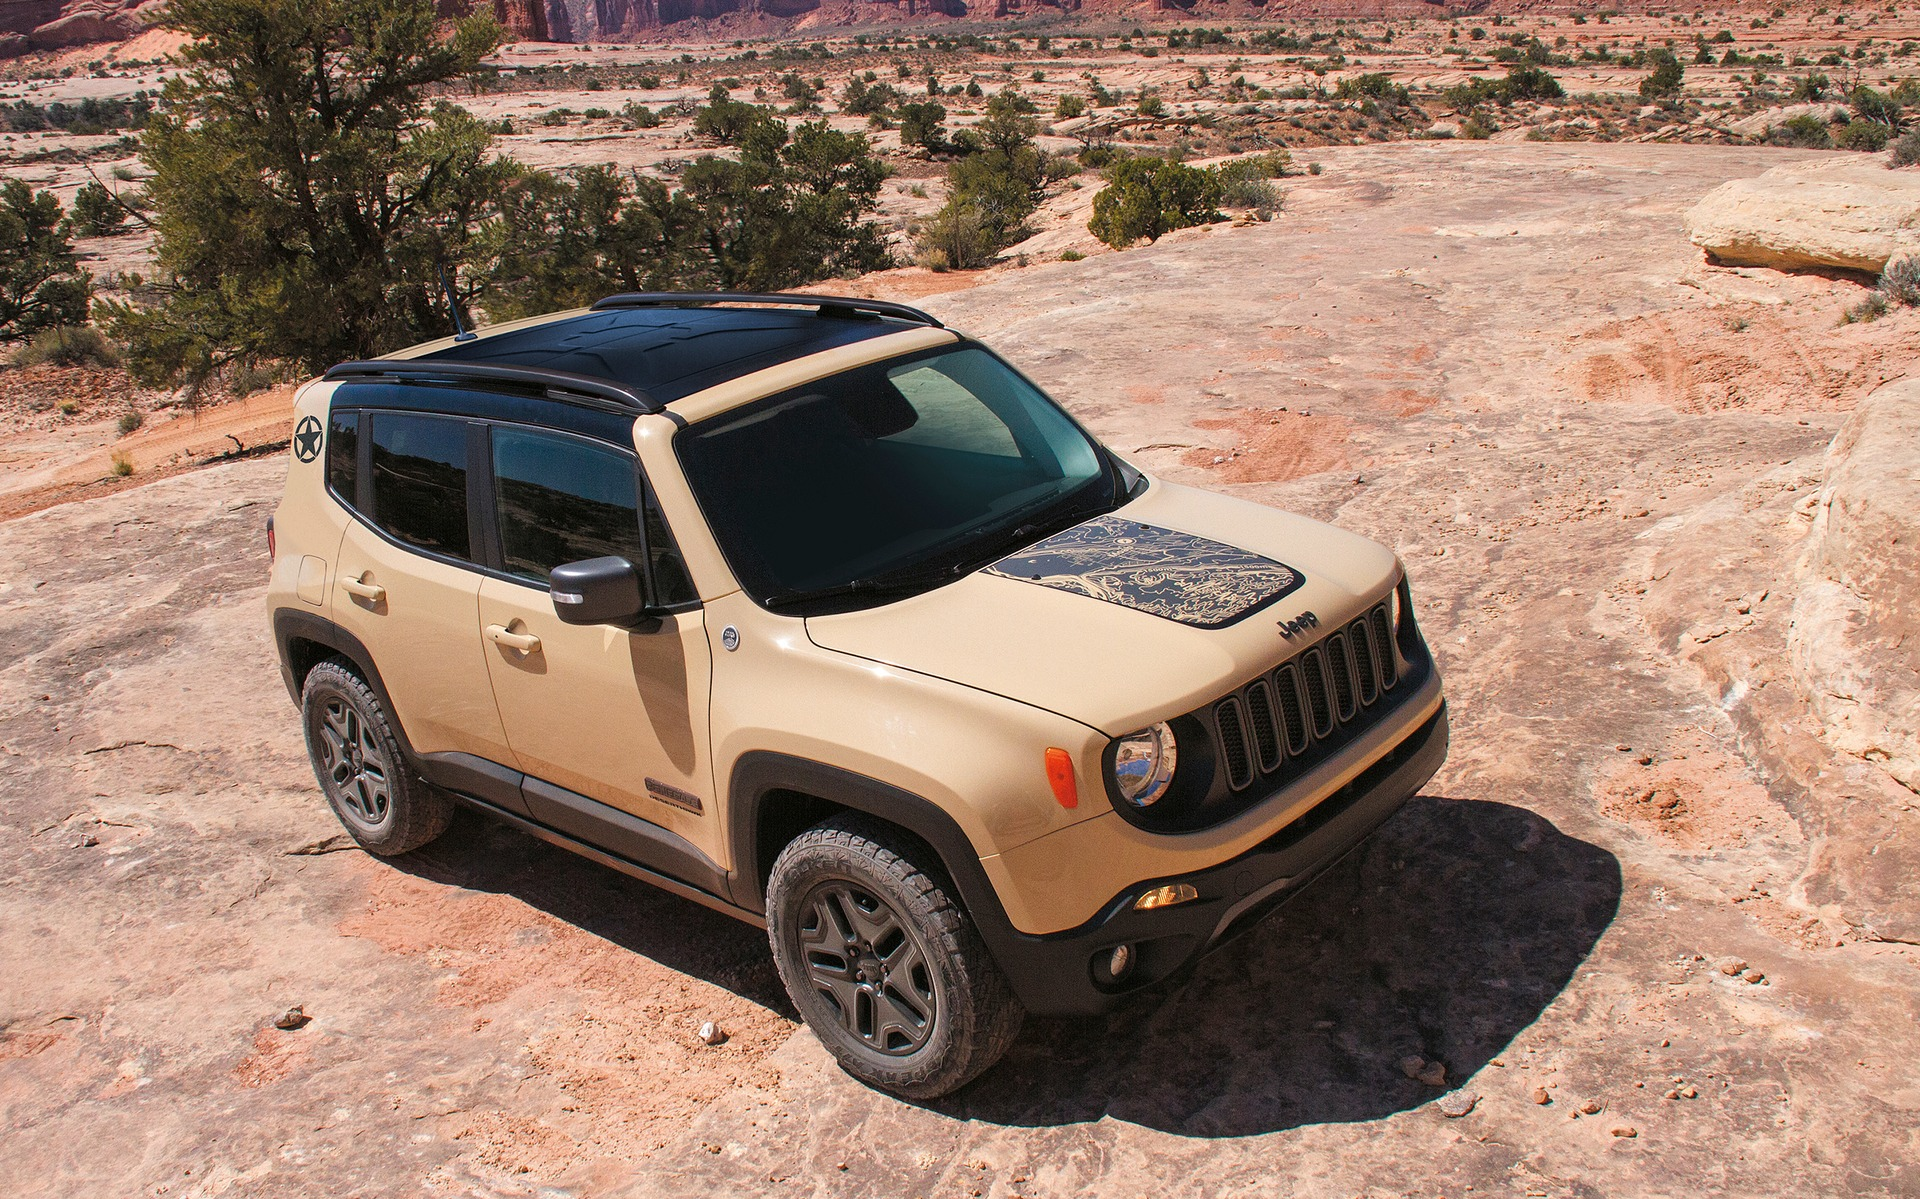 Jeep Renegade Desert Hawk >> 2017 Jeep Renegade Deserthawk Unique Style Off Road